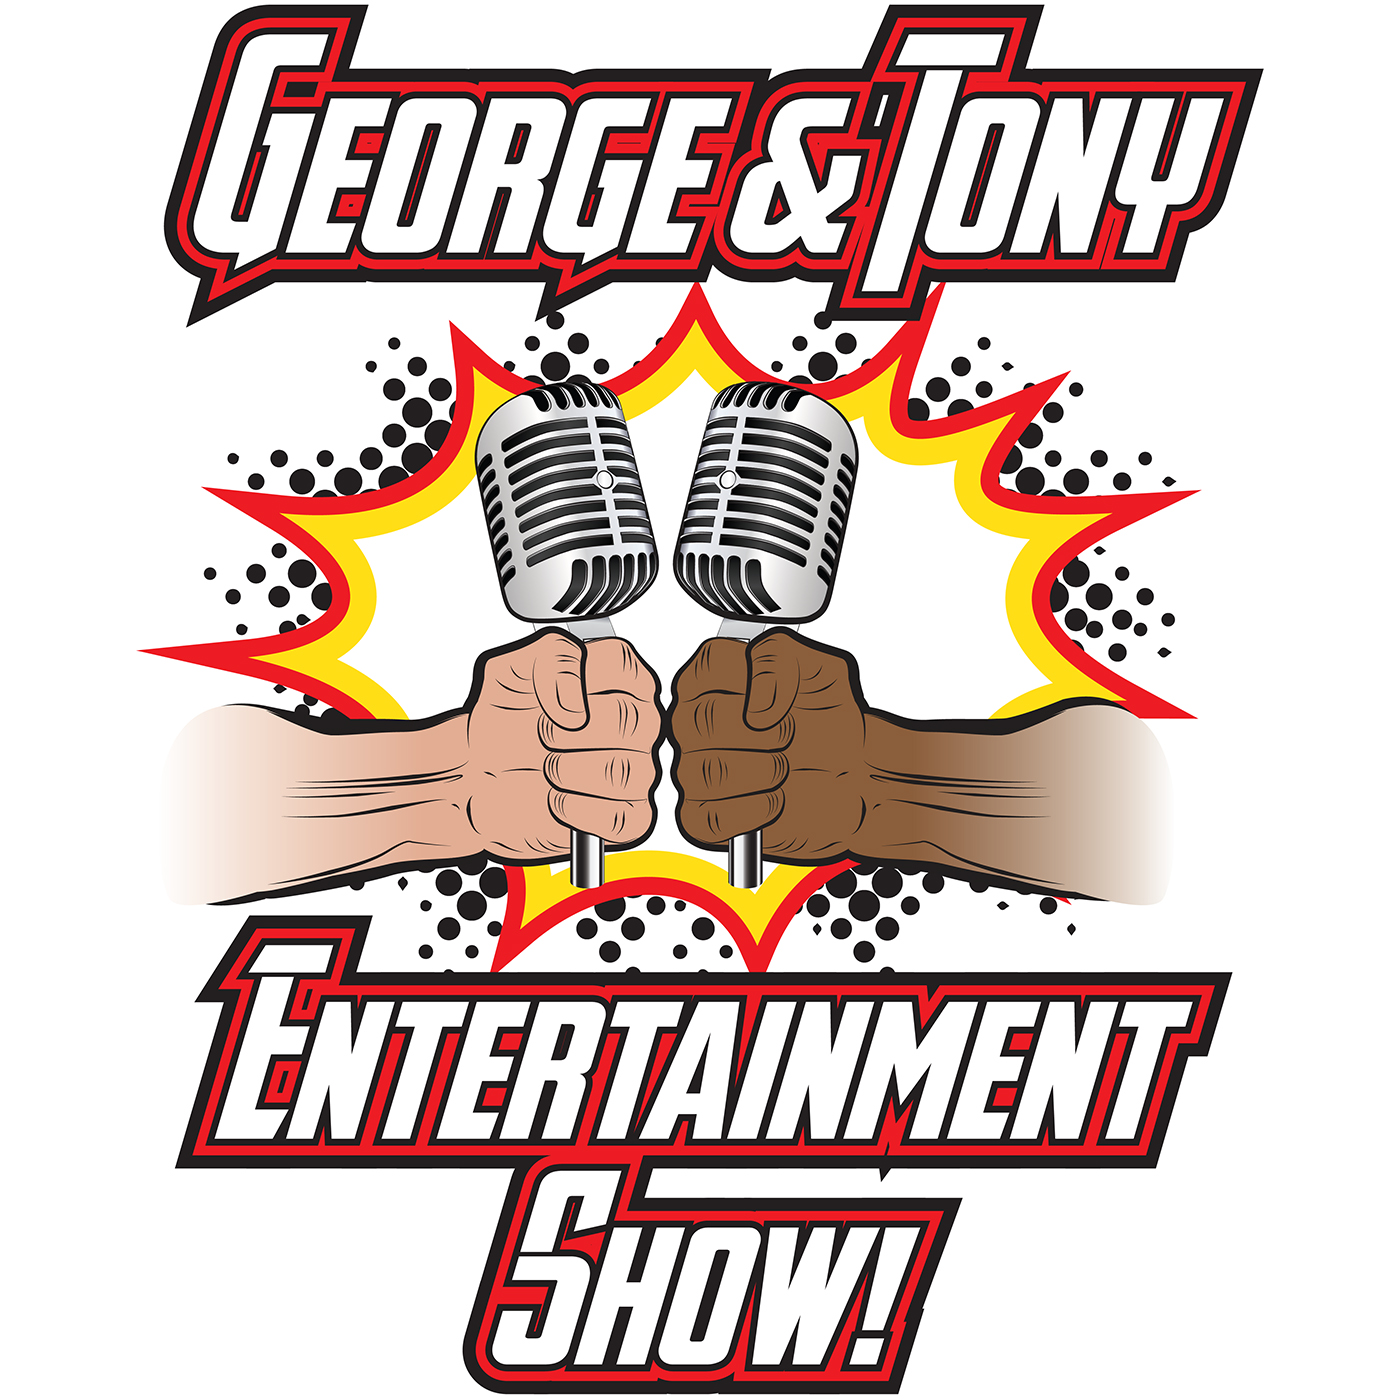 George and Tony Entertainment Show #62